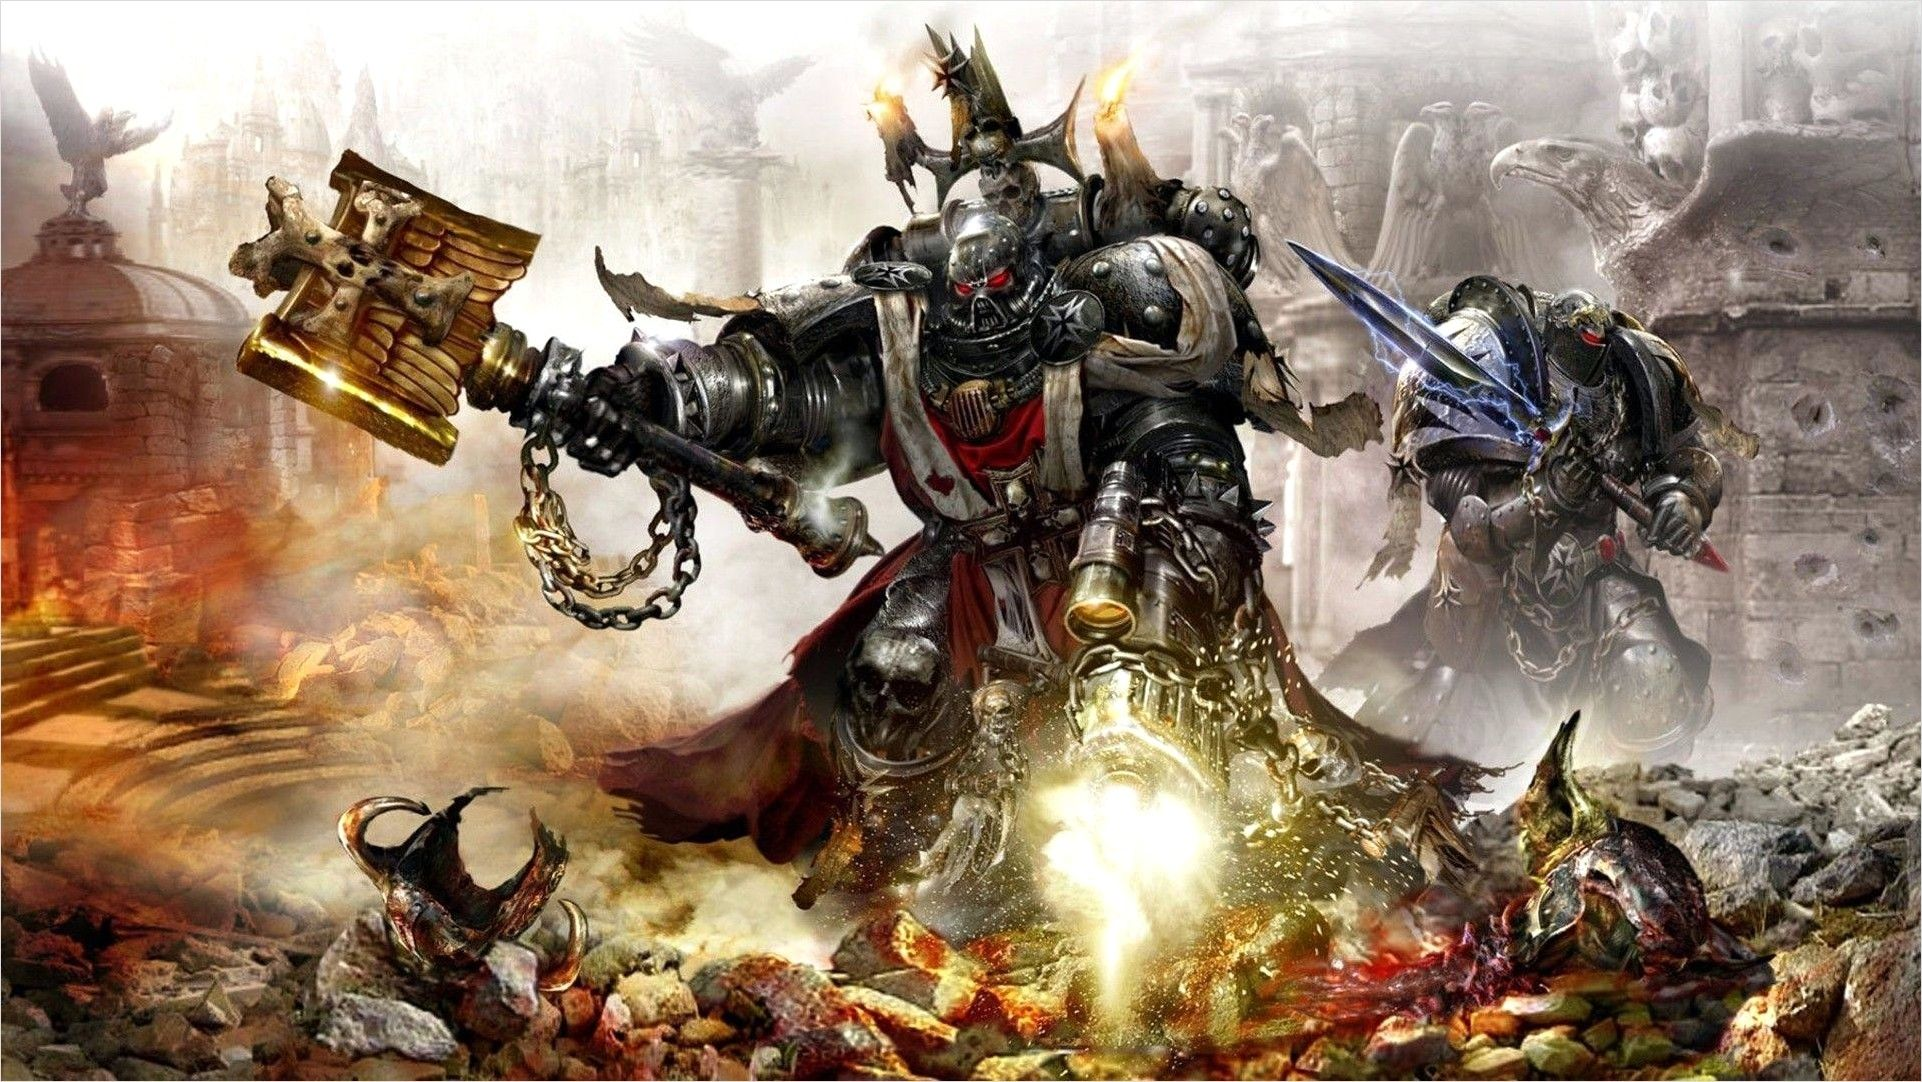 40k Imperial Knights Wallpaper 4k In 2020 Warhammer 40k Warhammer Warhammer Art